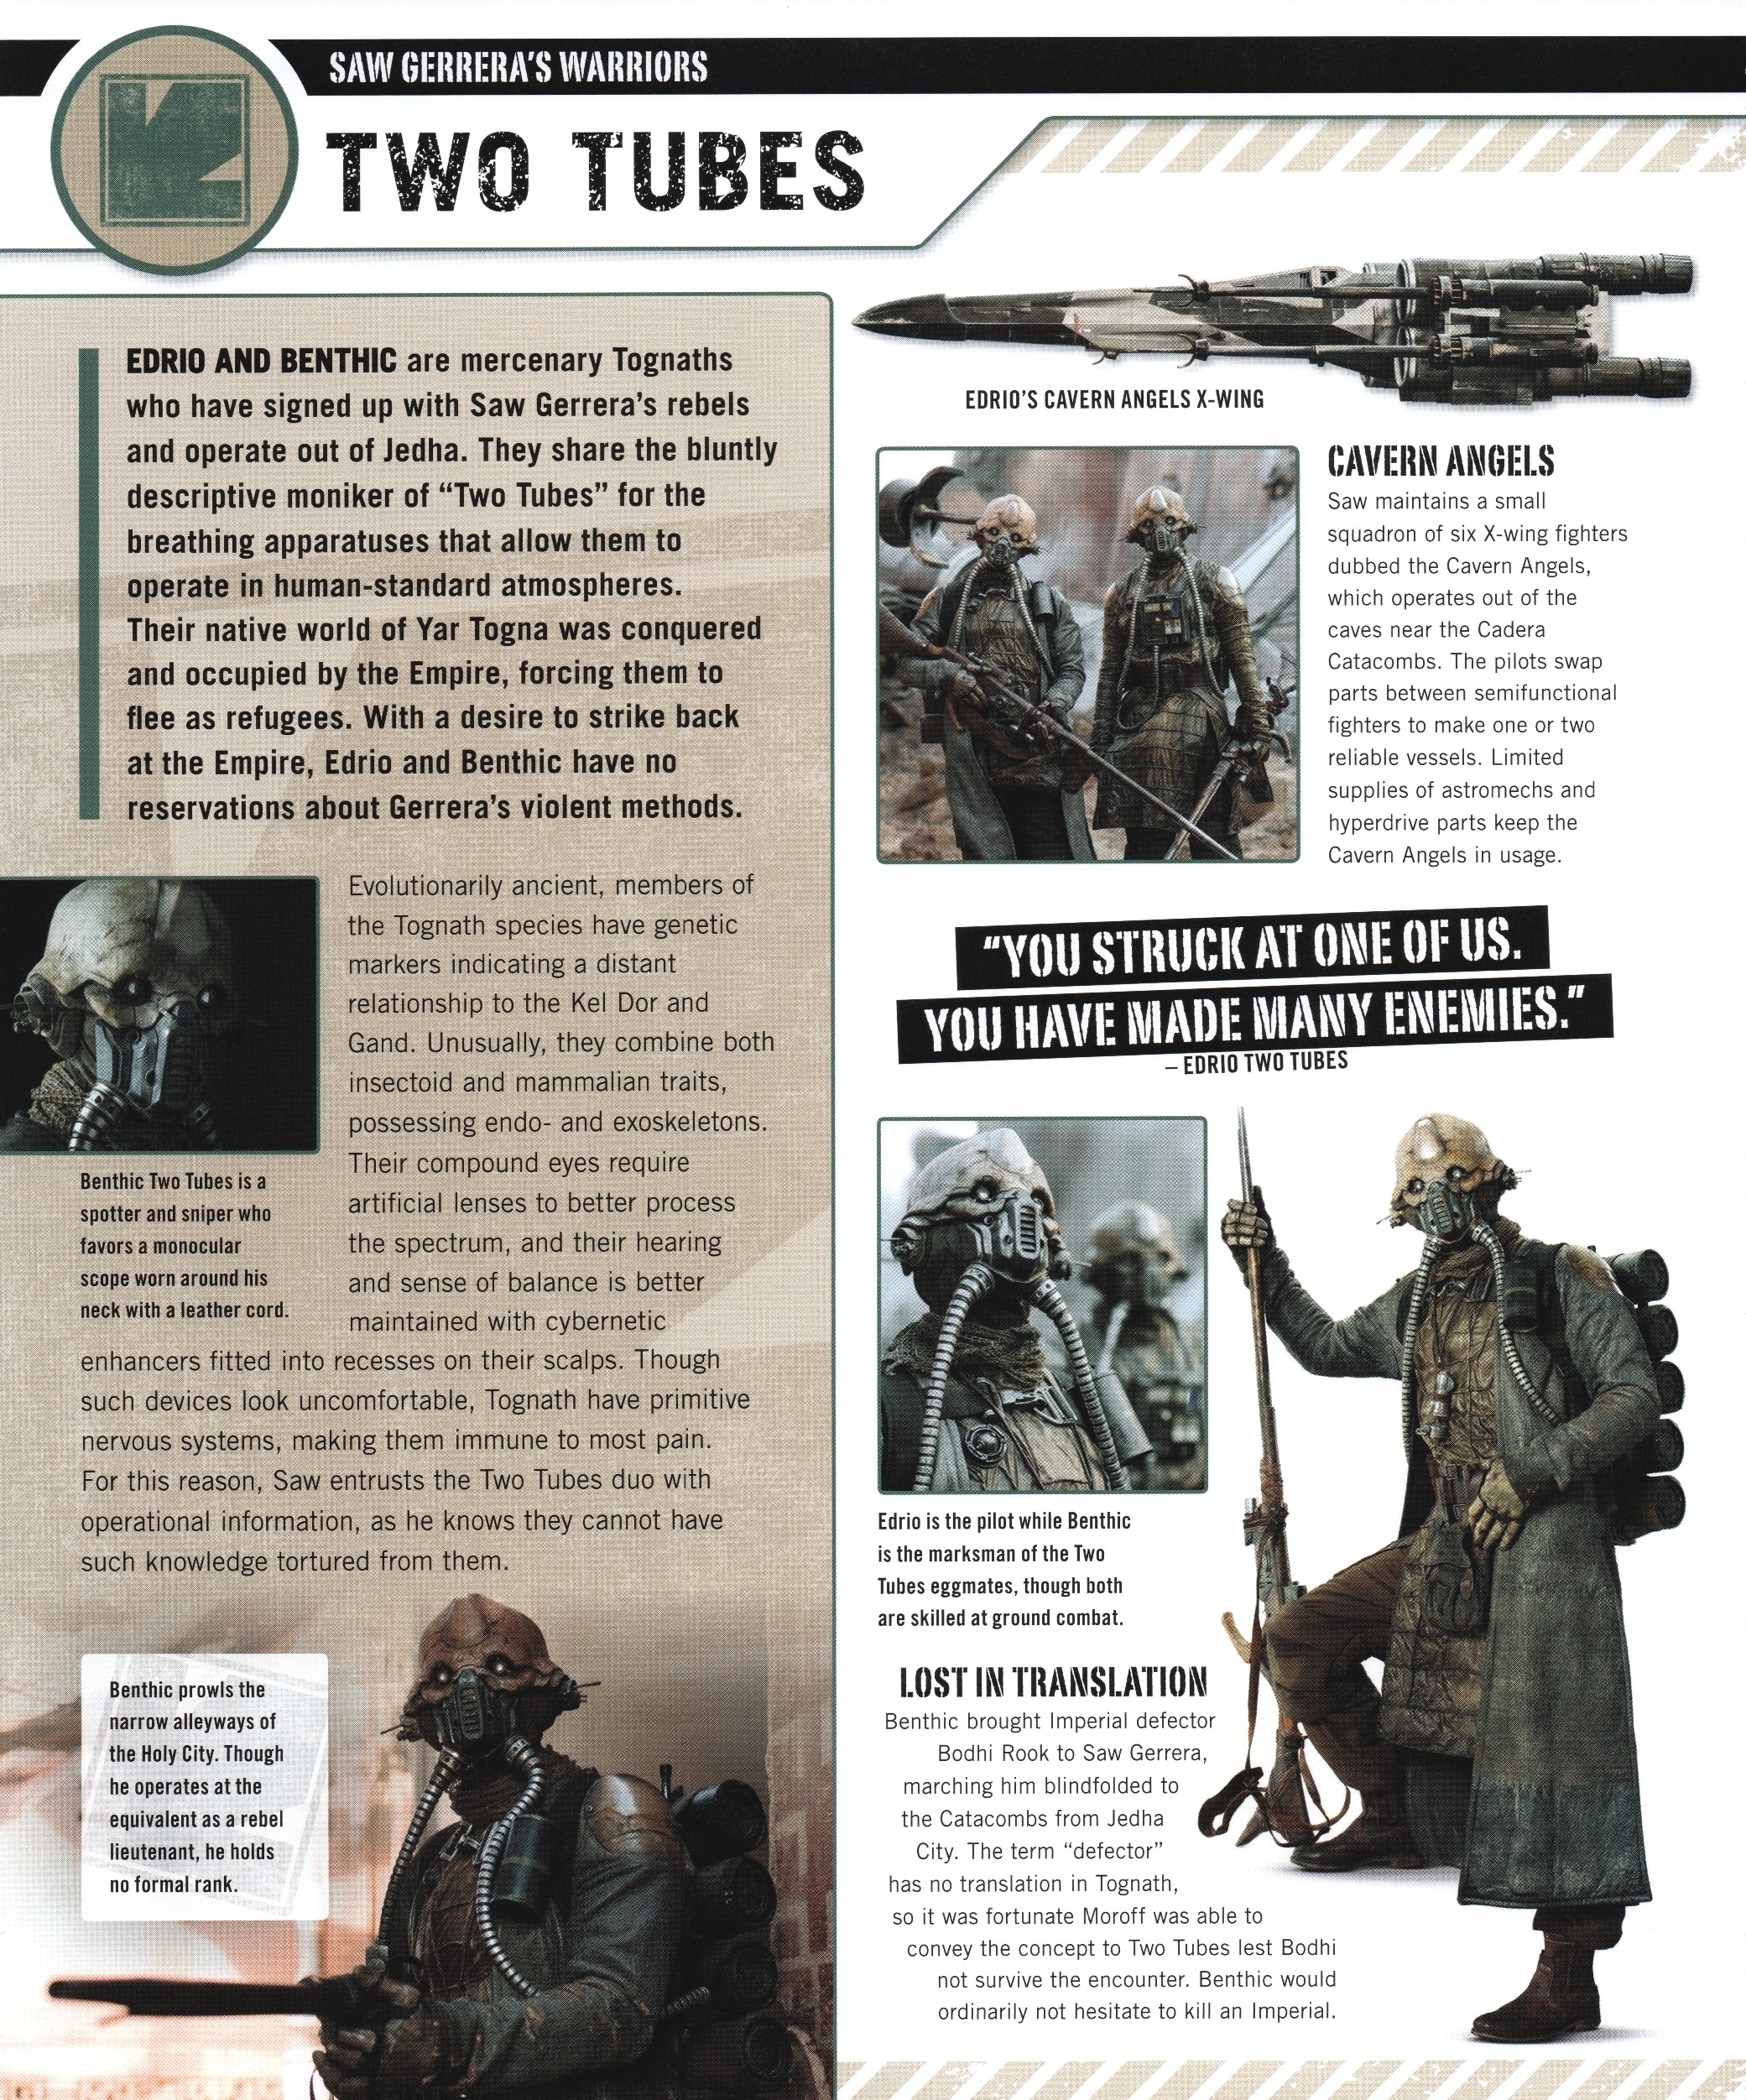 Rogue One Ultimate Visual Guide (b0bafett_Empire) p086